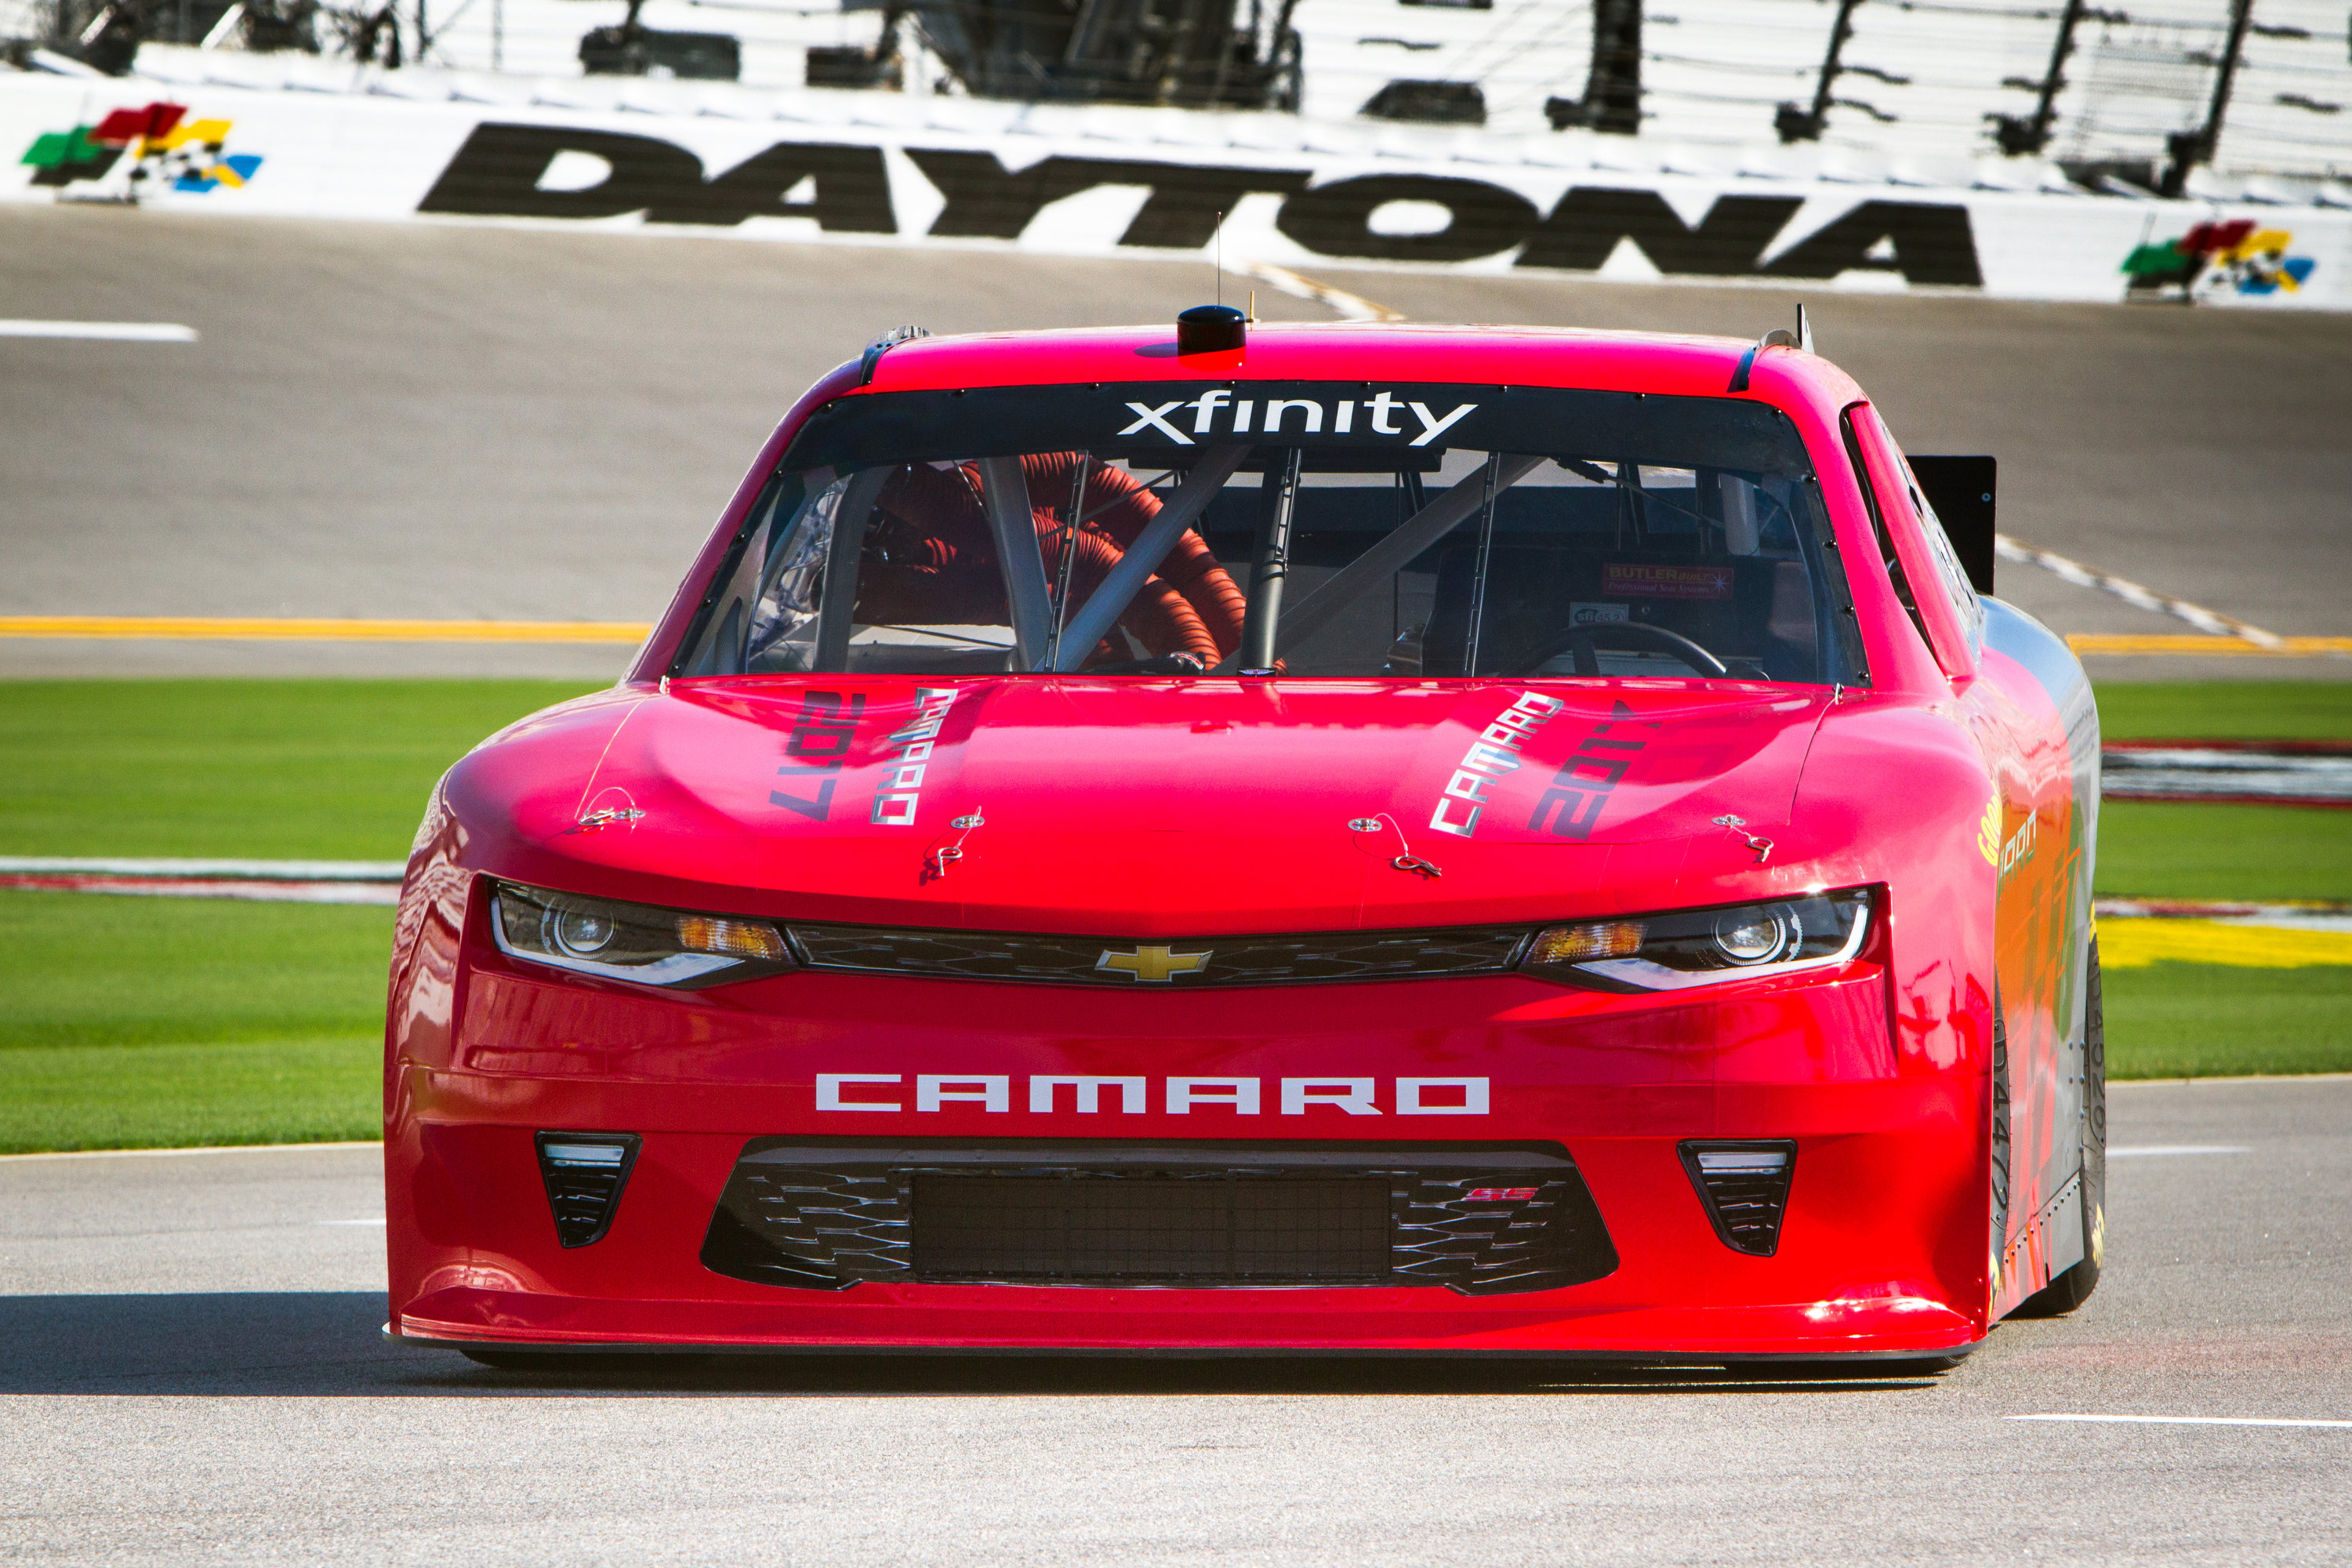 Chevrolet announces Thursday, June 30, 2016, that the sixth-generation Camaro SS will serve as the model for Chevrolet race cars in the NASCAR XFINITY series starting next season. The official racing debut comes in February at the 2017 seasonÕs kickoff race at Daytona International Speedway. (Photo by Alexis Meadows for Chevy Racing)